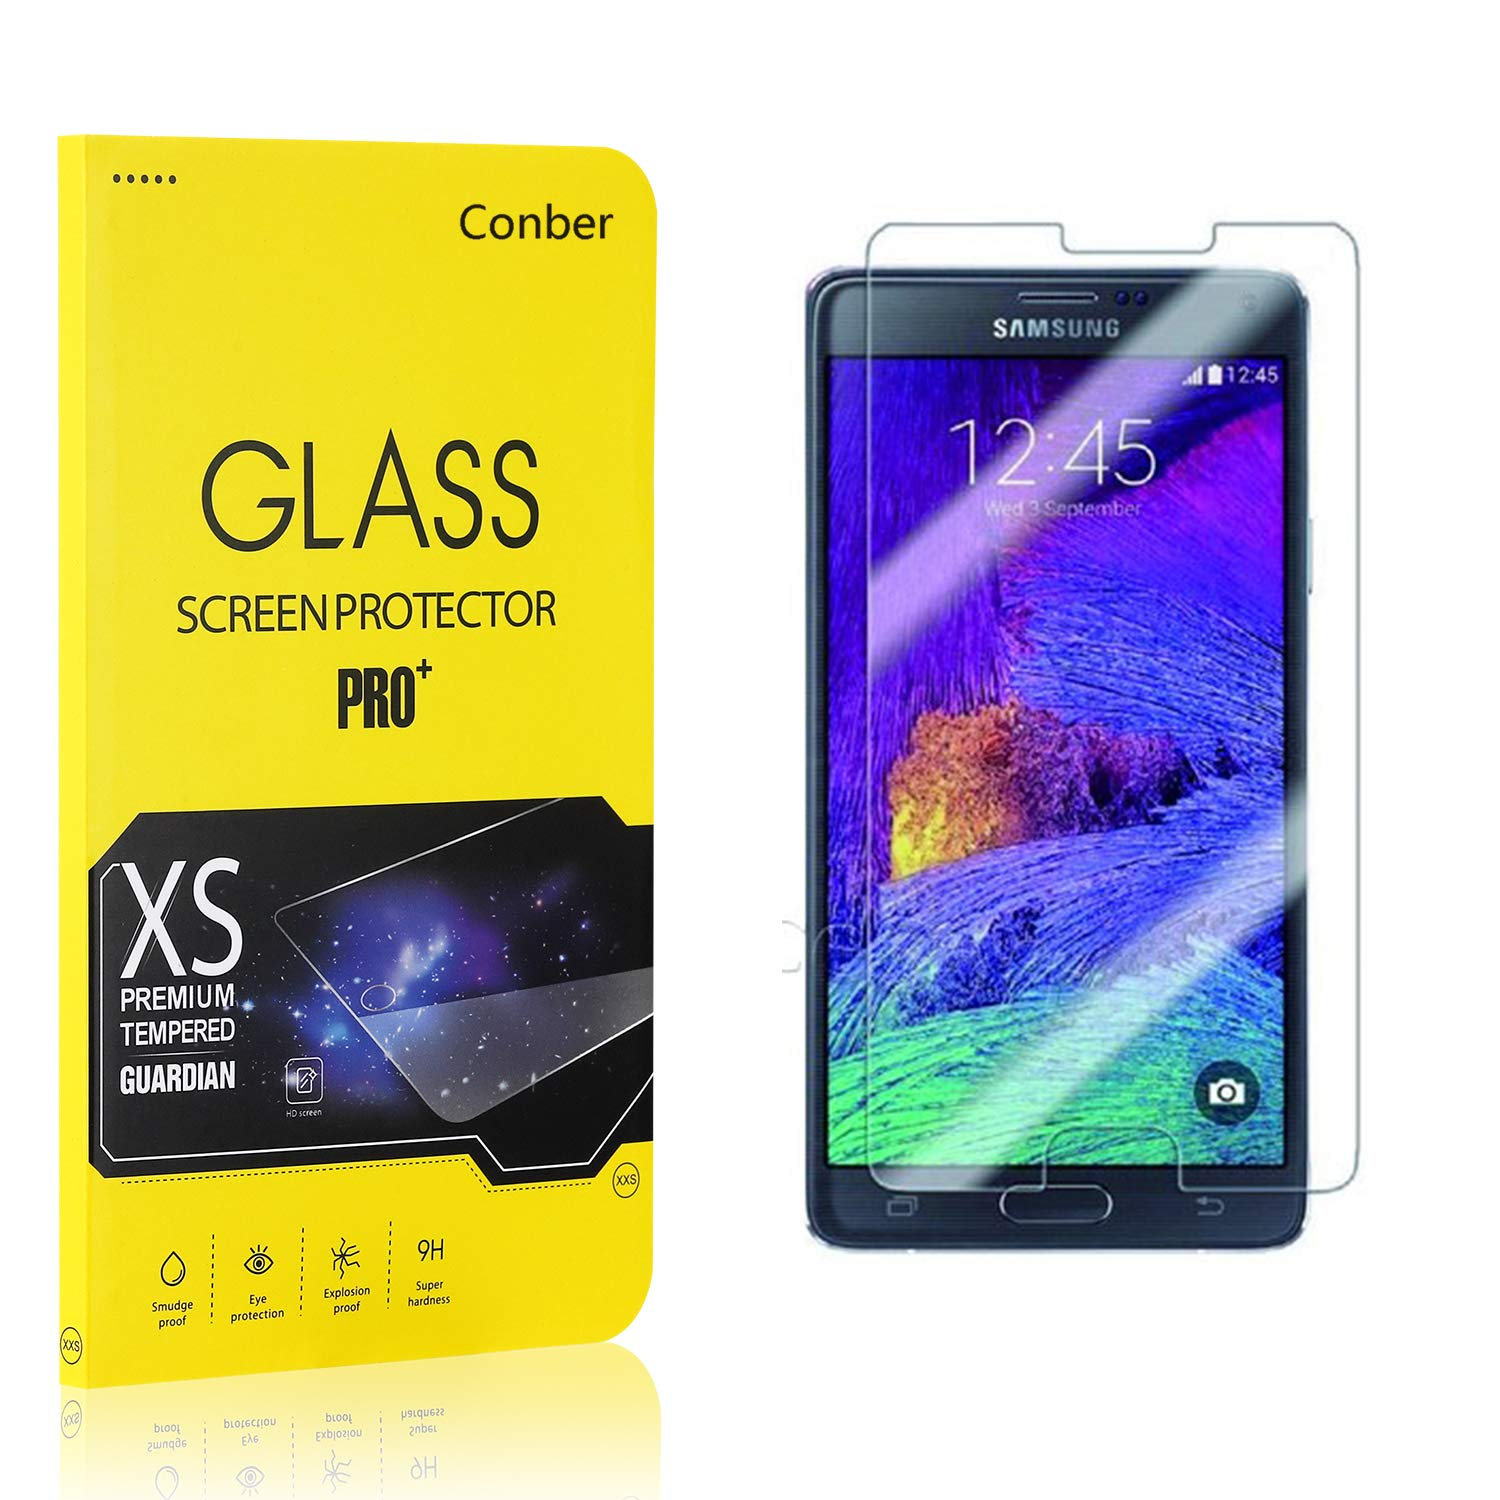 Premium Tempered Glass Screen Protector for Samsung Galaxy Note 4 Screen Protector for Samsung Galaxy Note 4, Conber Anti-Shatter 1 Pack Scratch-Resistant Case Friendly